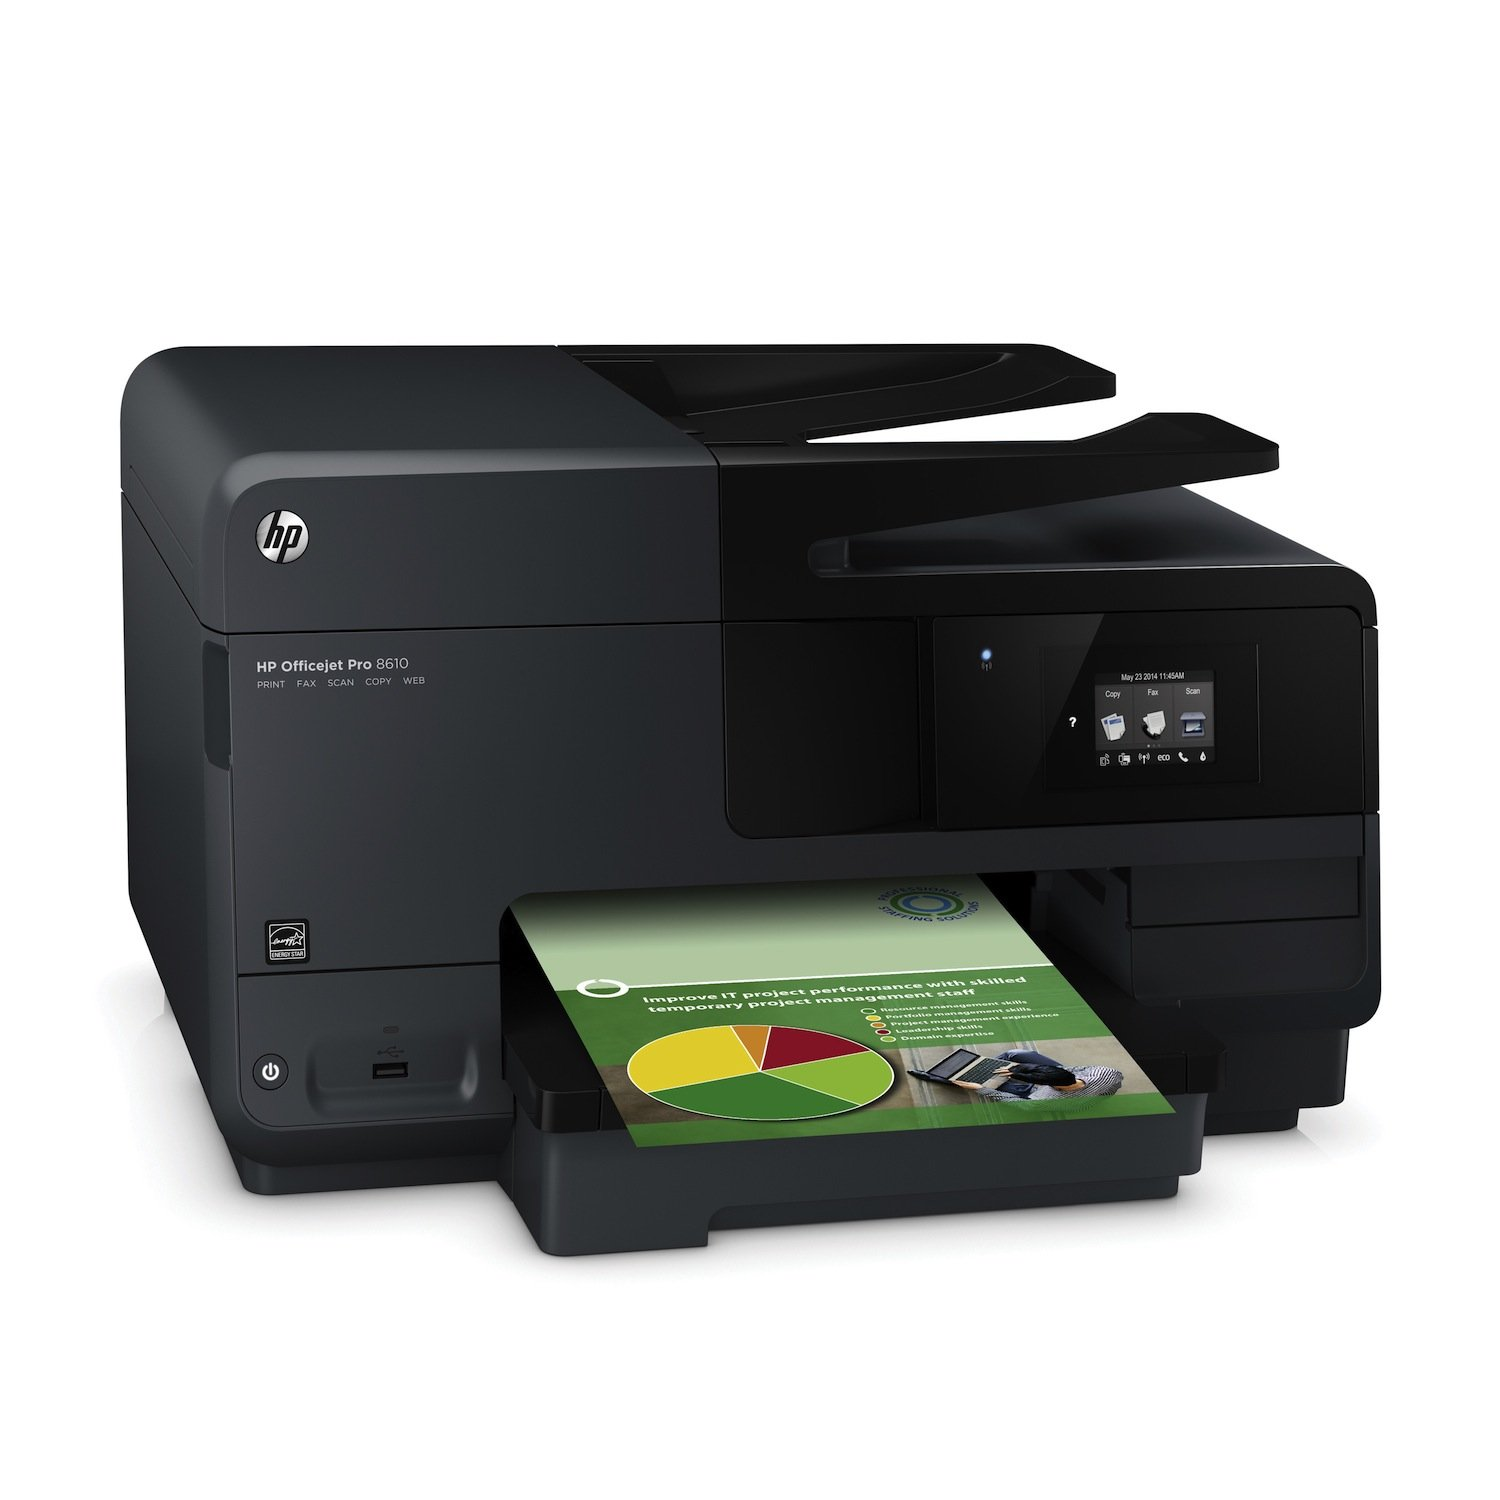 HP Officejet Pro 8620 e-All-in-One Tintenstrahl